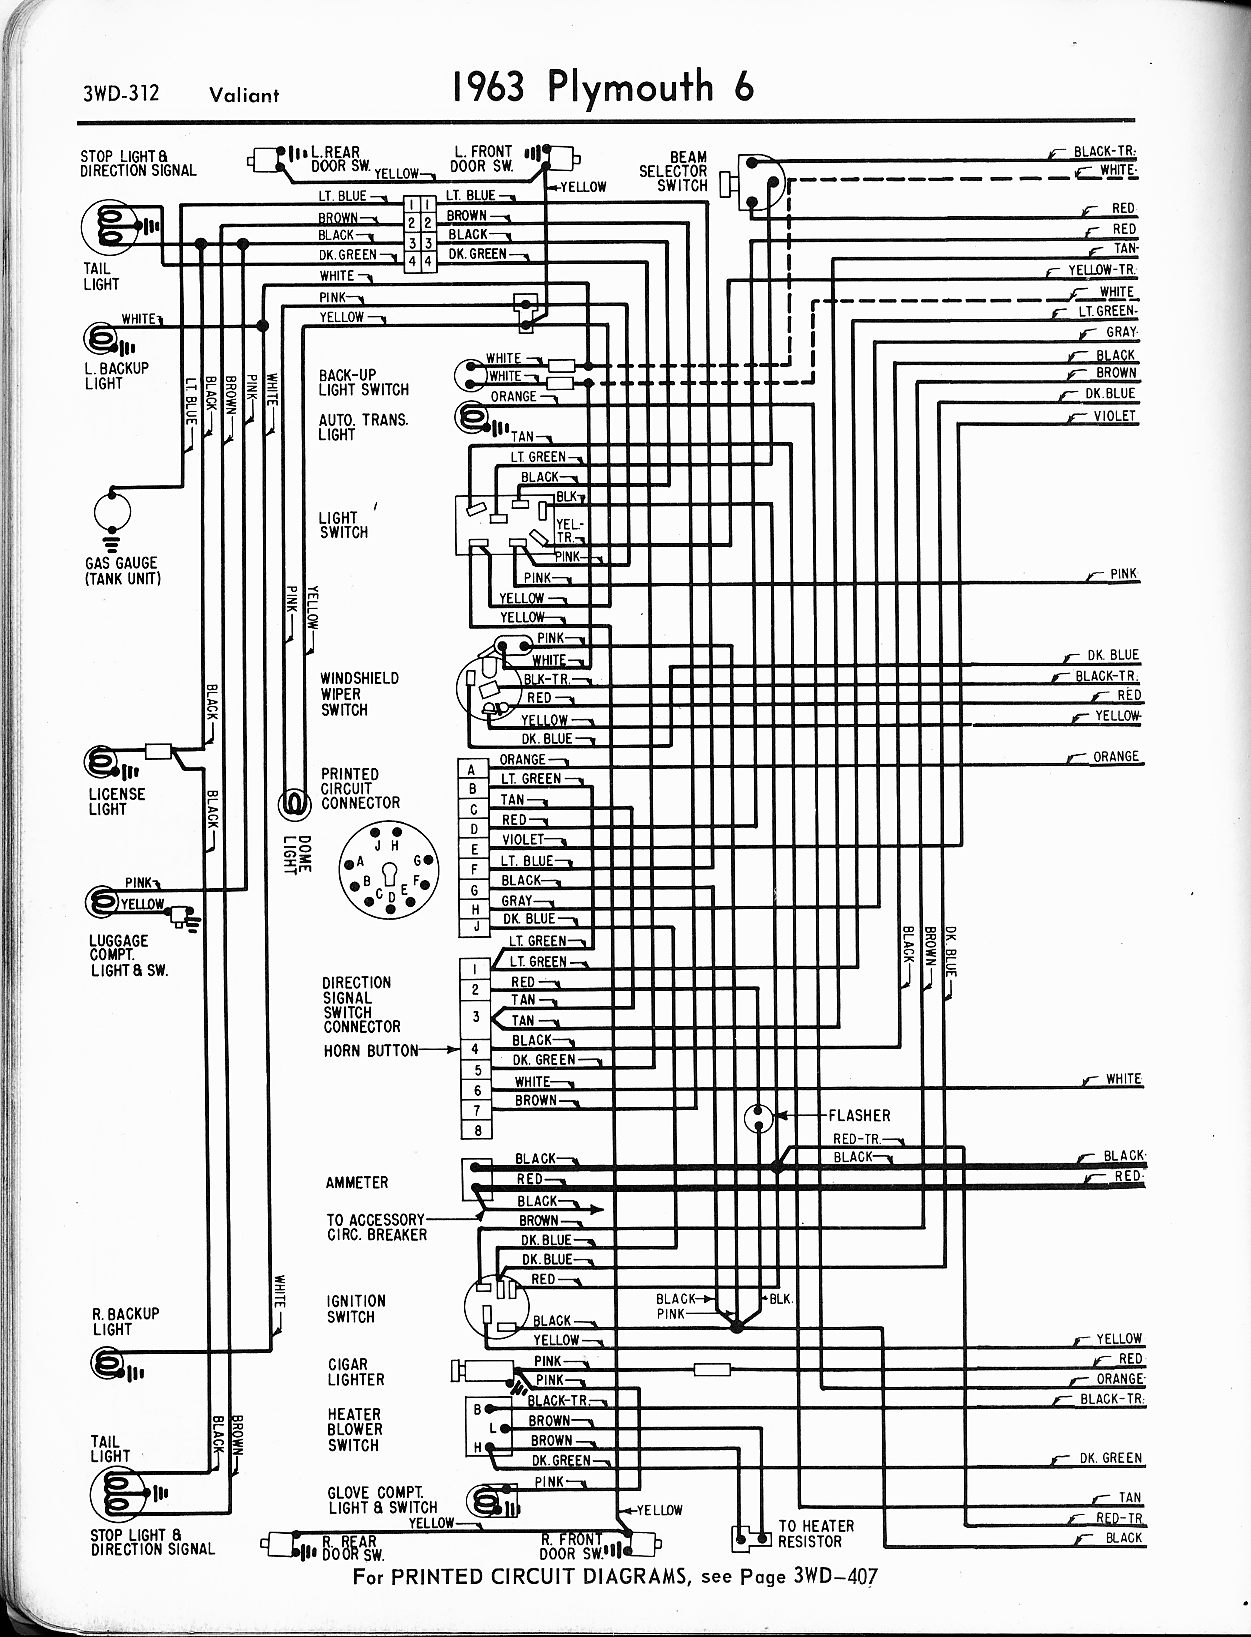 MWire5765 312 1956 1965 plymouth wiring the old car manual project 1968 Ford Falcon Wiring Diagram at panicattacktreatment.co